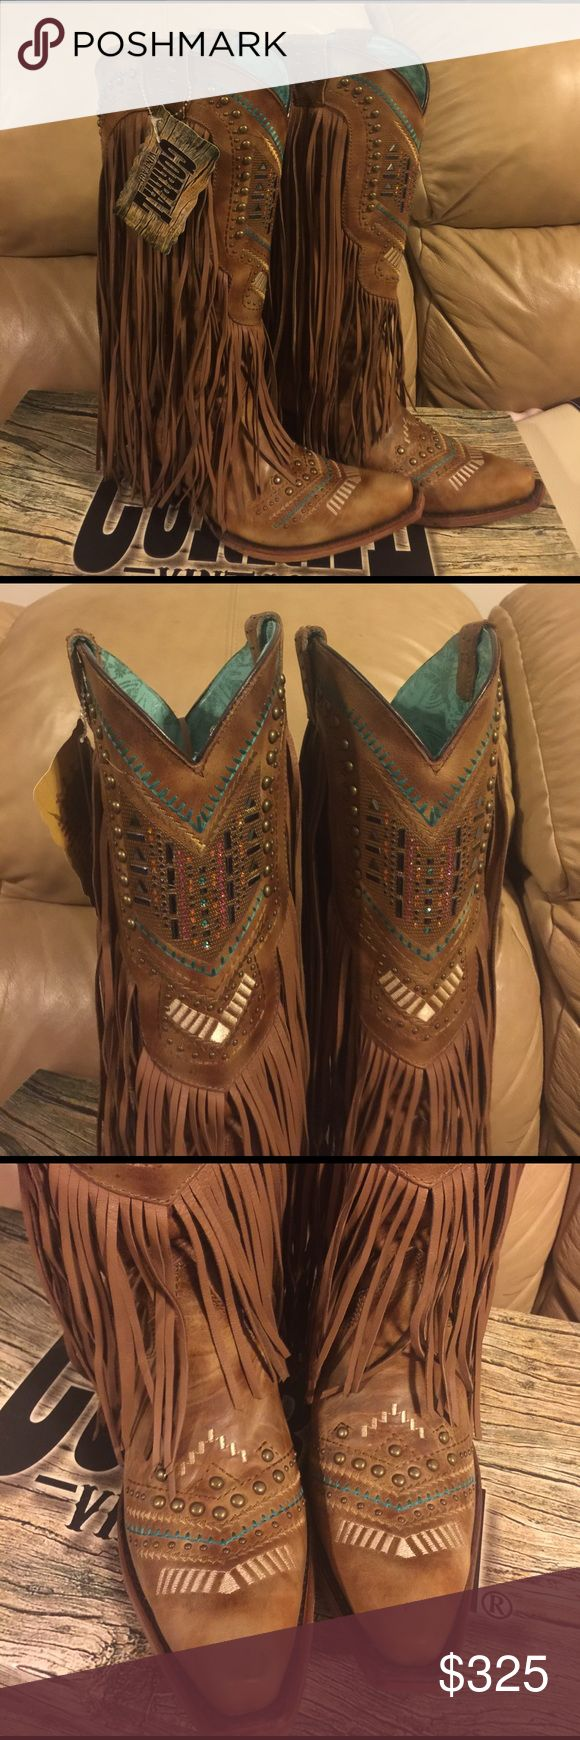 Corral Fringe Boots NWT Brand new beautiful Corral boots with the freaking cutest fringe!!! Never used, with tags!!! Priced to sell. Corral Vintage Boots Shoes Heeled Boots